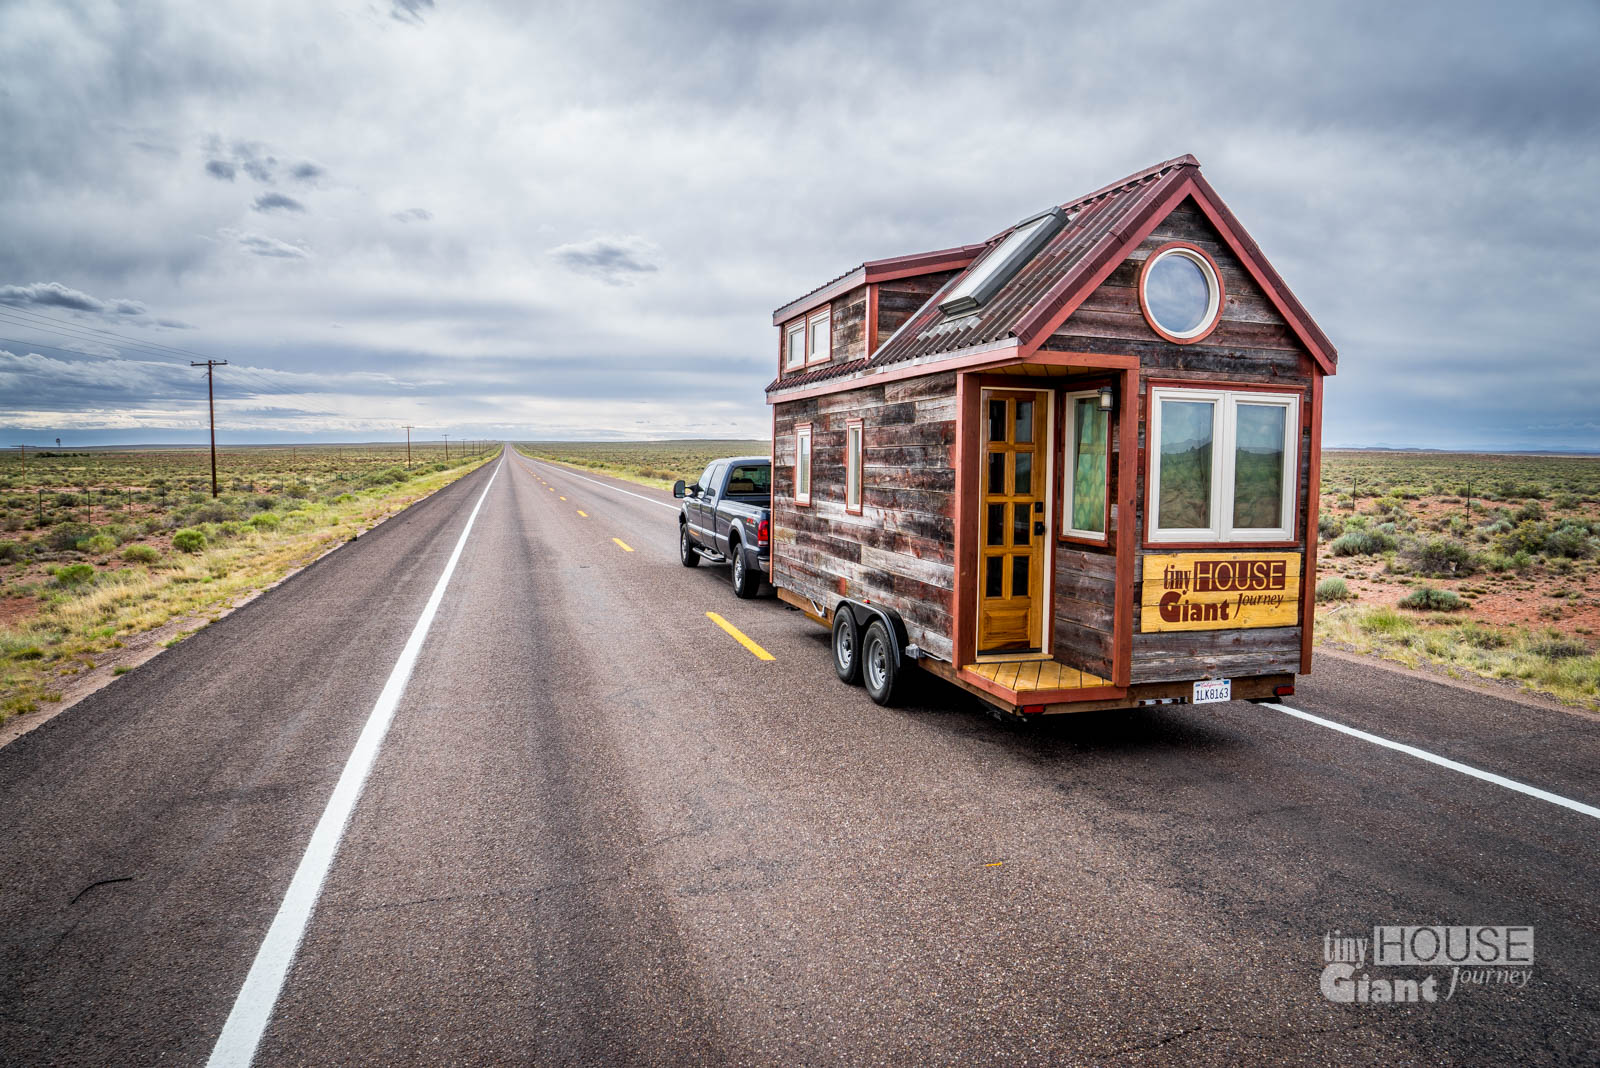 Tiny House Travels